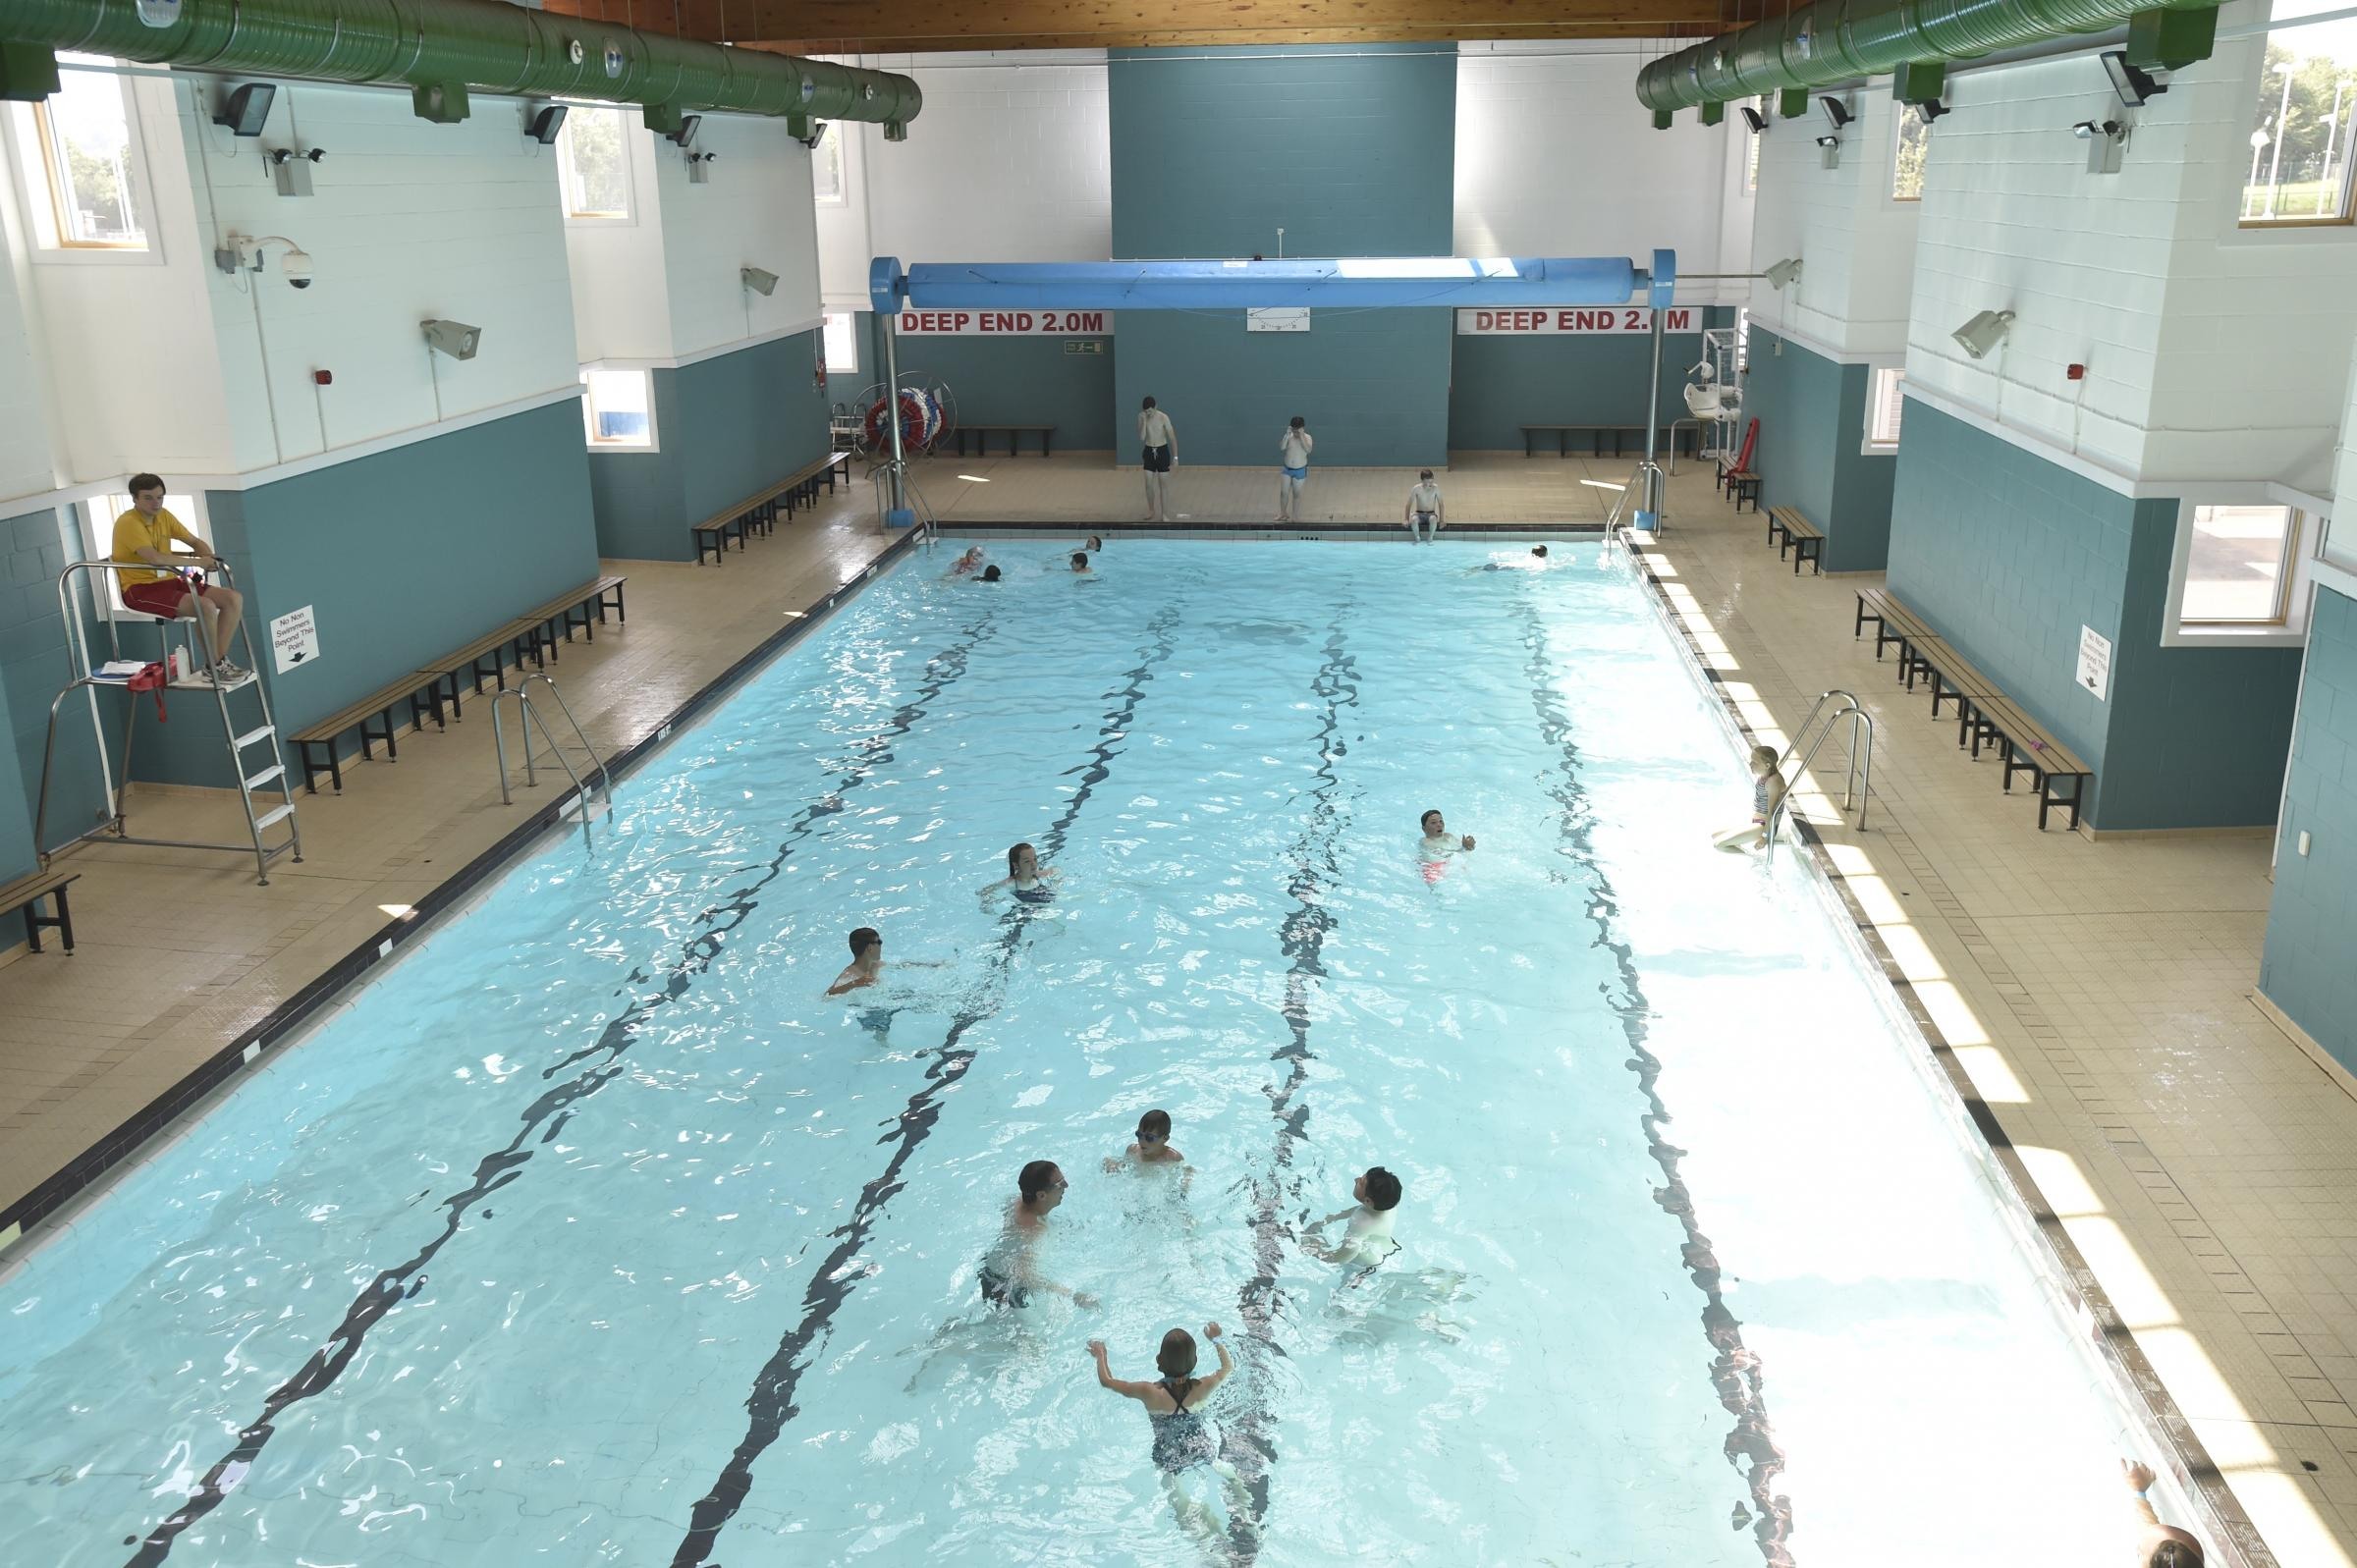 Corsham Community Campus Open Day .The busy swimming pool..Pics by Diane Vose DV2444/13.